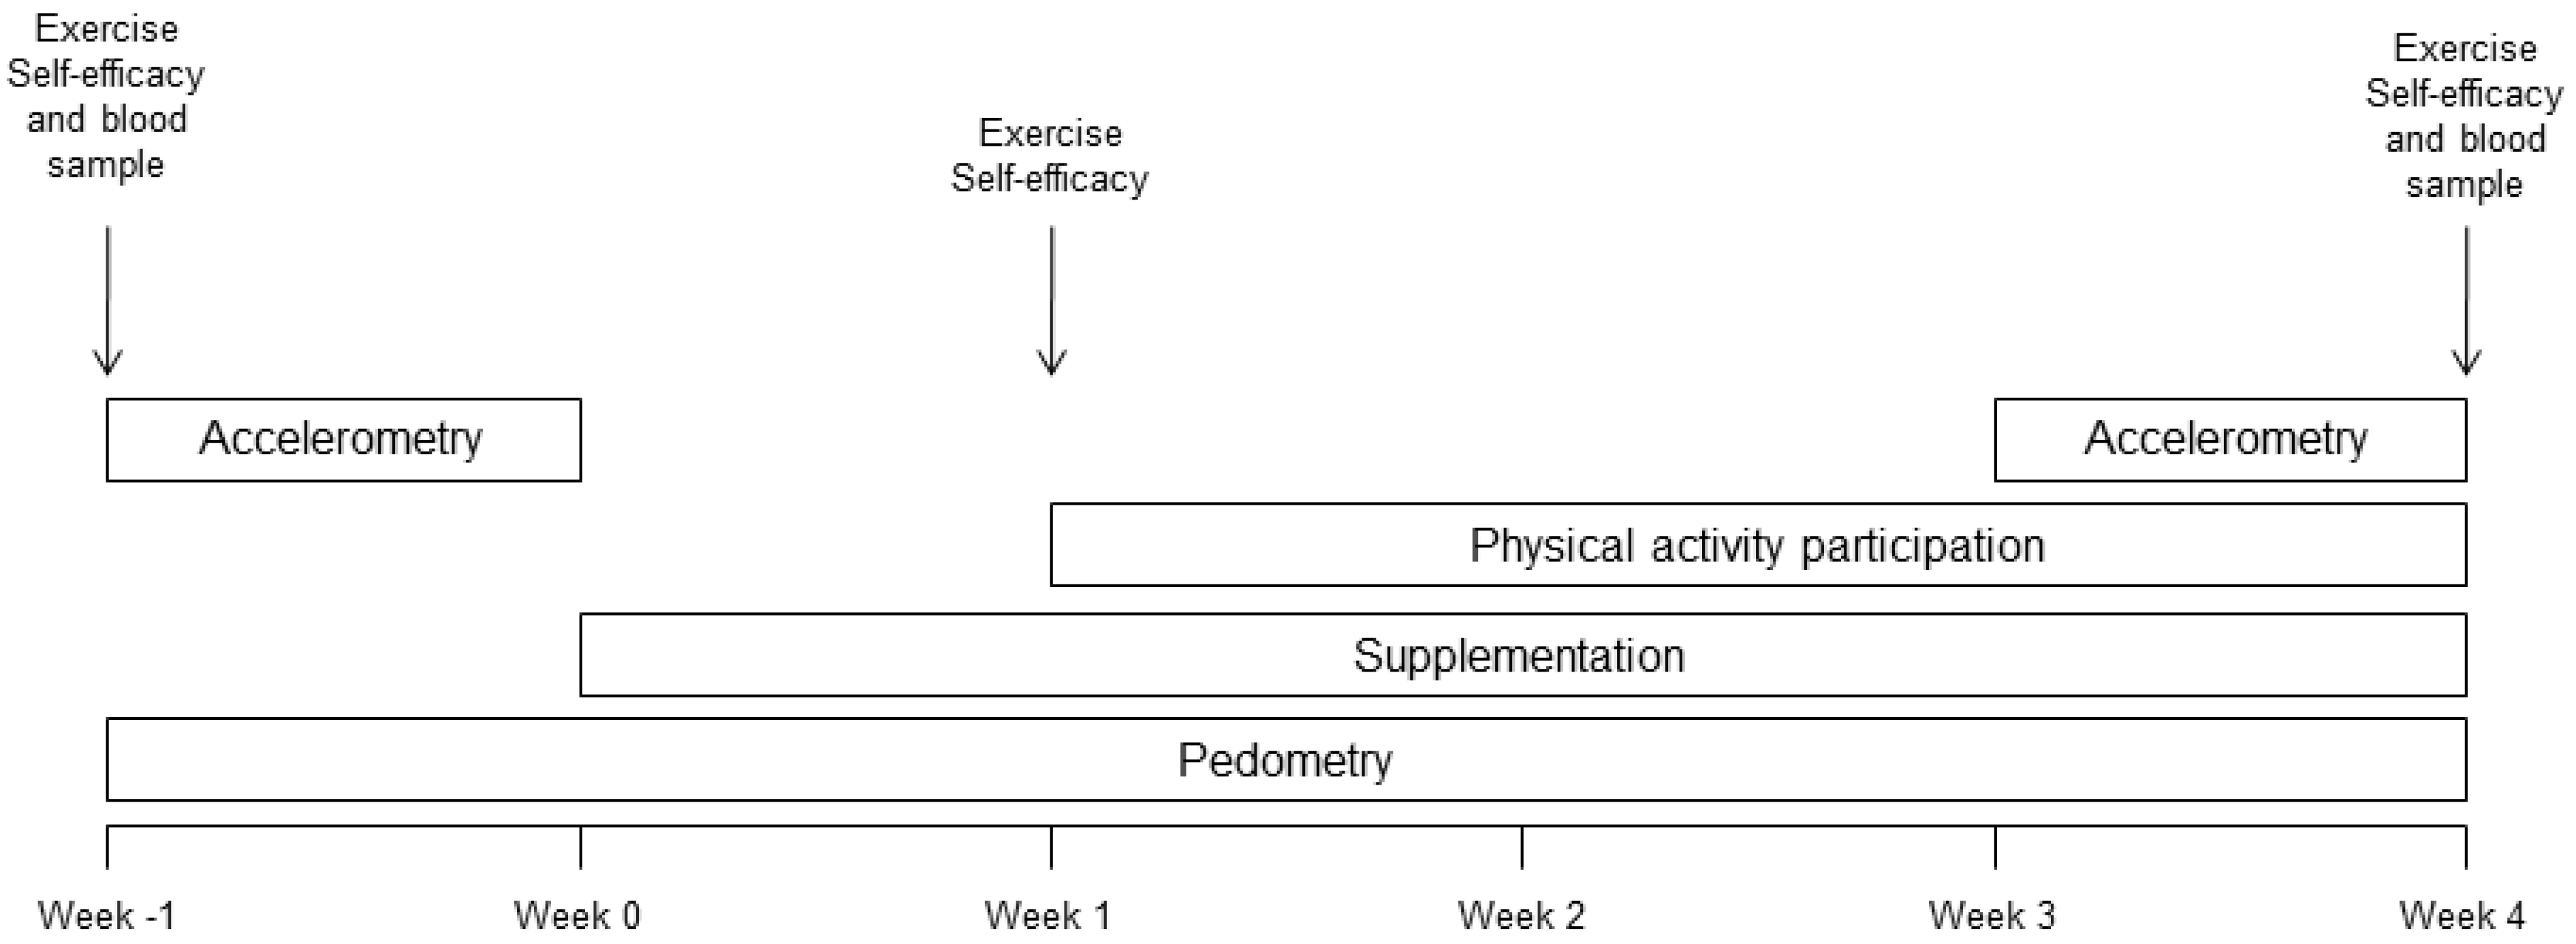 national physical activity guidelines australia